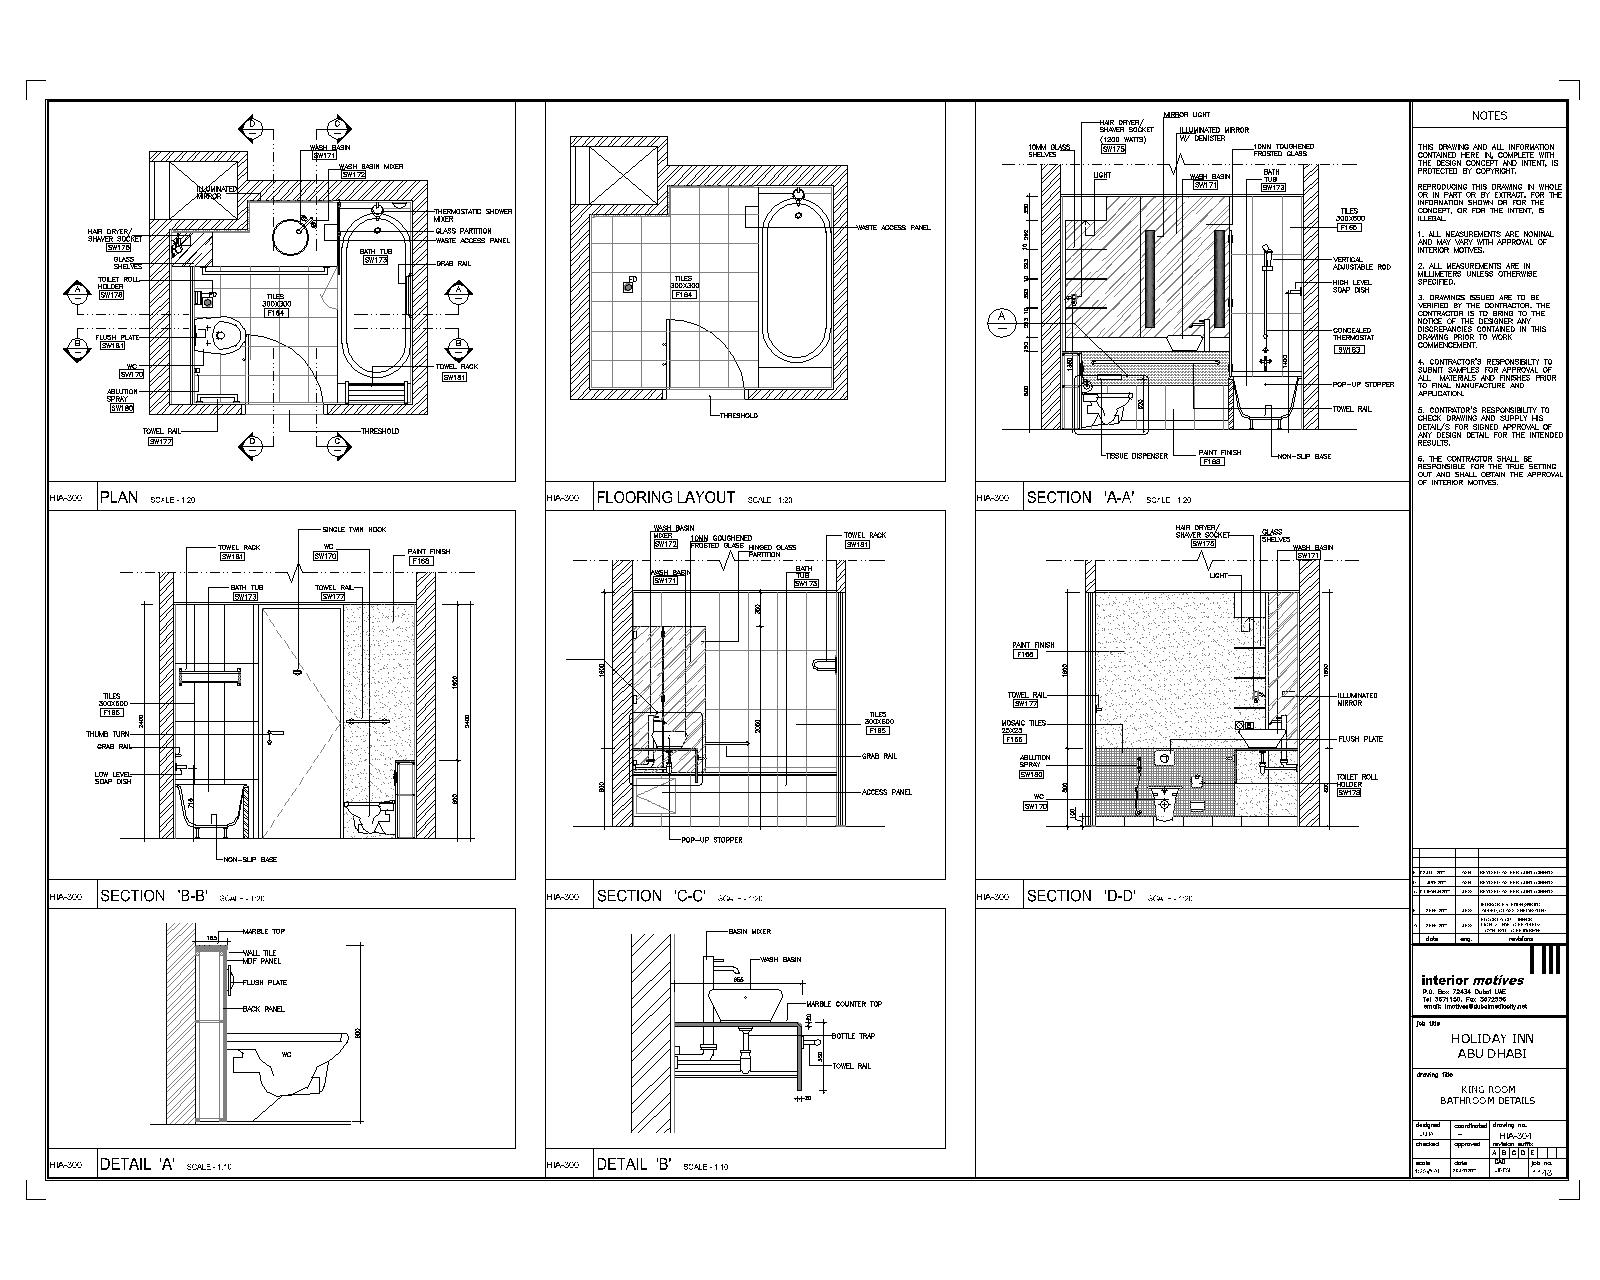 Plan autocad 2d modern house interior design for Cad blueprints